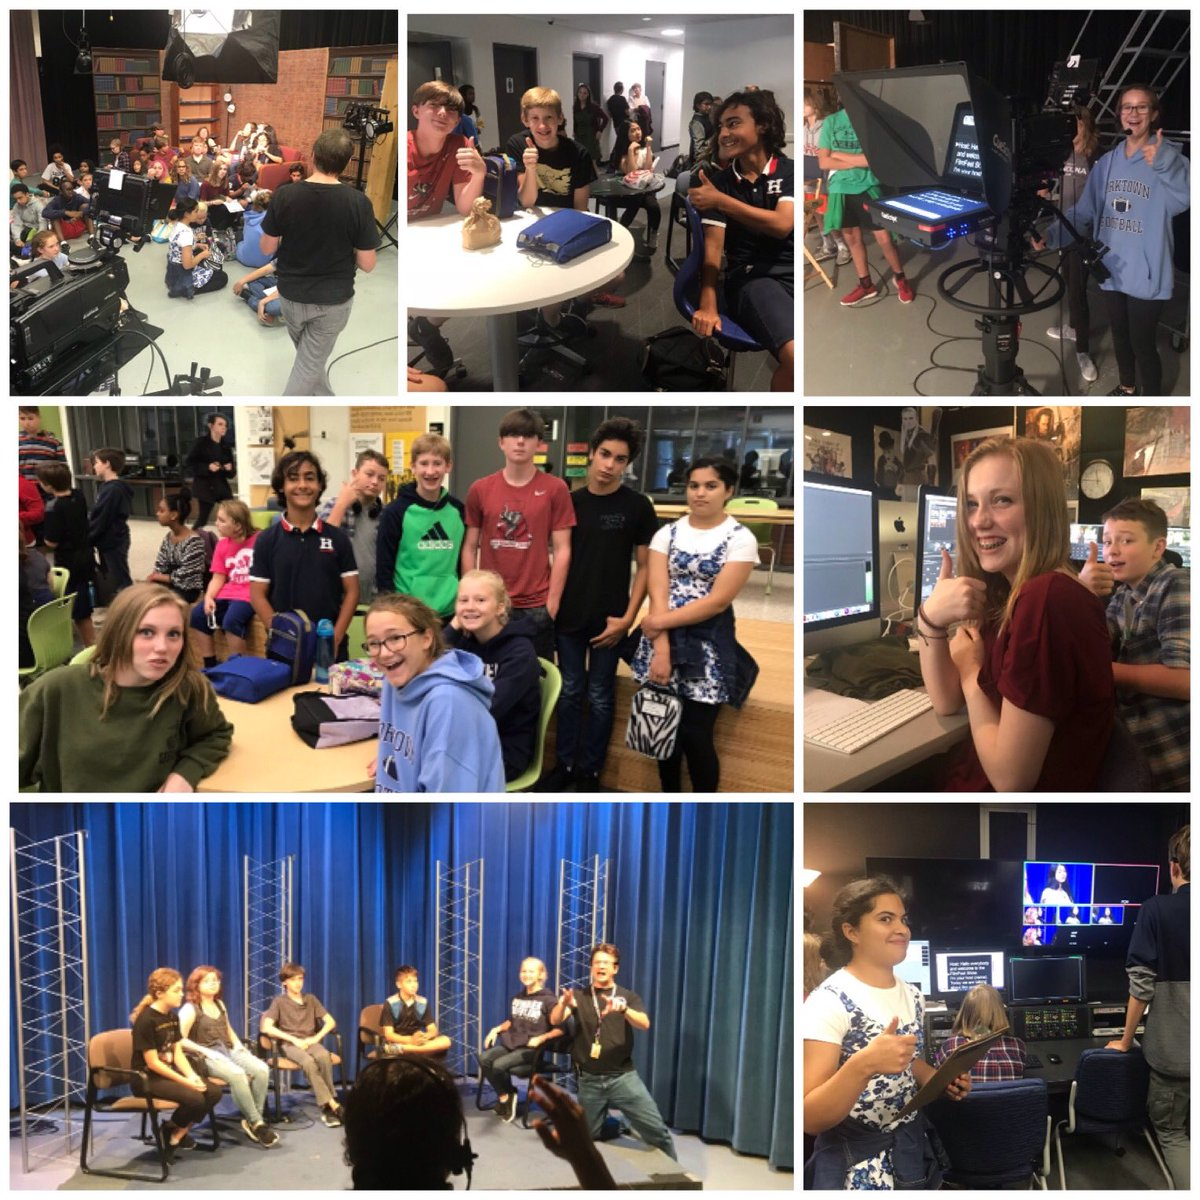 Lights, camera, action! WMS journalism &amp; drama students attend a Filmmaking Workshop at the Arlington Career Center. Talk about a high-tech classroom! <a target='_blank' href='http://search.twitter.com/search?q=WMSwolf'><a target='_blank' href='https://twitter.com/hashtag/WMSwolf?src=hash'>#WMSwolf</a></a> <a target='_blank' href='http://search.twitter.com/search?q=APSGetInvolved'><a target='_blank' href='https://twitter.com/hashtag/APSGetInvolved?src=hash'>#APSGetInvolved</a></a> <a target='_blank' href='http://search.twitter.com/search?q=WeCare'><a target='_blank' href='https://twitter.com/hashtag/WeCare?src=hash'>#WeCare</a></a> <a target='_blank' href='http://twitter.com/APSCareerCenter'>@APSCareerCenter</a> <a target='_blank' href='https://t.co/gXo4vqBlIm'>https://t.co/gXo4vqBlIm</a>